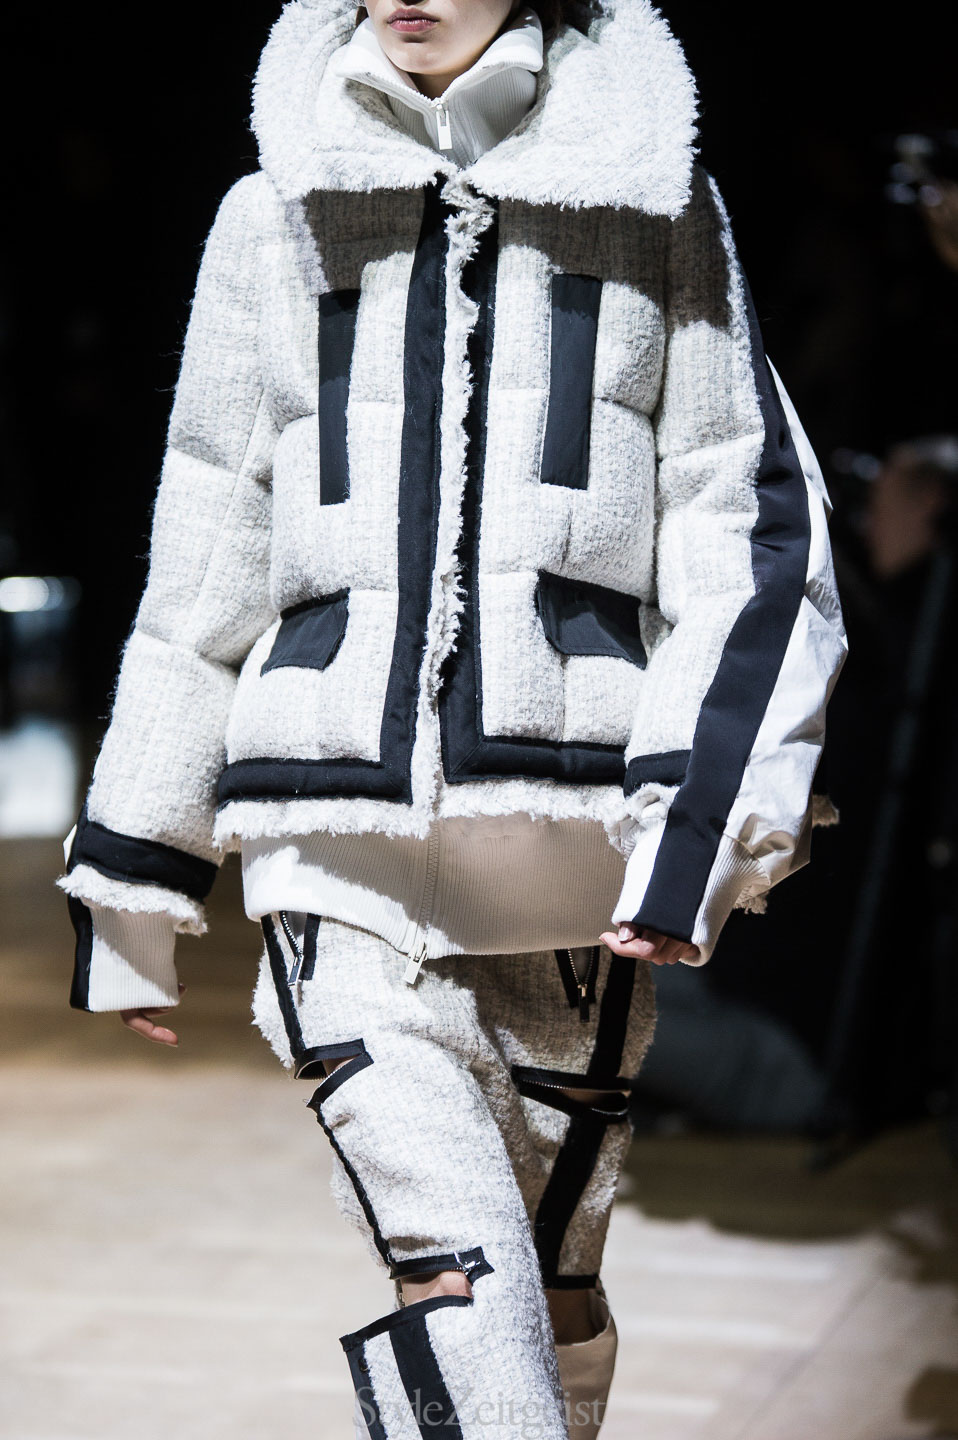 StyleZeitgeist Sacai F/W17 Women's - Paris Fashion    StyleZeitgeist Sacai F/W17 Women's - Paris Fashion    StyleZeitgeist Sacai F/W17 Women's - Paris Fashion    StyleZeitgeist Sacai F/W17 Women's - Paris Fashion    StyleZeitgeist Sacai F/W17 Women's - Paris Fashion    StyleZeitgeist Sacai F/W17 Women's - Paris Fashion    StyleZeitgeist Sacai F/W17 Women's - Paris Fashion    StyleZeitgeist Sacai F/W17 Women's - Paris Fashion    StyleZeitgeist Sacai F/W17 Women's - Paris Fashion    StyleZeitgeist Sacai F/W17 Women's - Paris Fashion    StyleZeitgeist Sacai F/W17 Women's - Paris Fashion    StyleZeitgeist Sacai F/W17 Women's - Paris Fashion